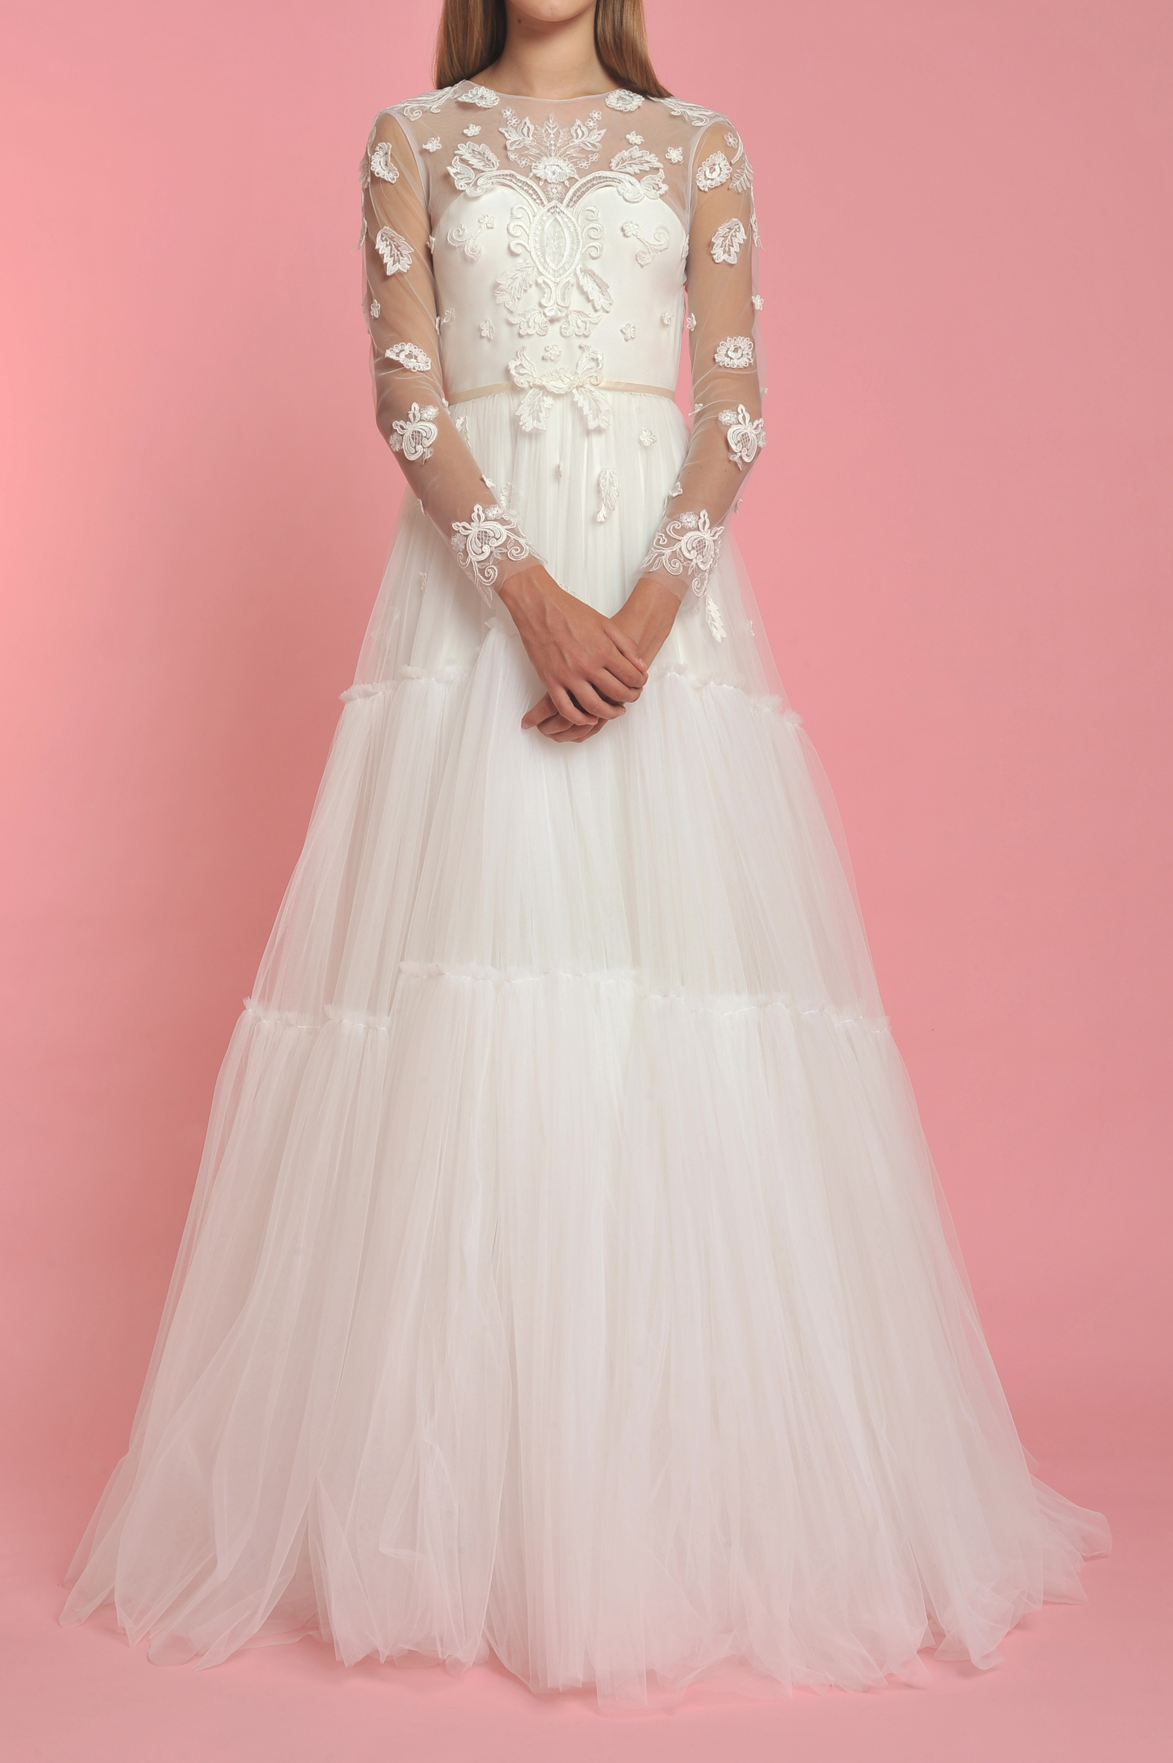 Long Sleeve Illusion Sweetheart Neck Flower Applique Wedding Dress ...